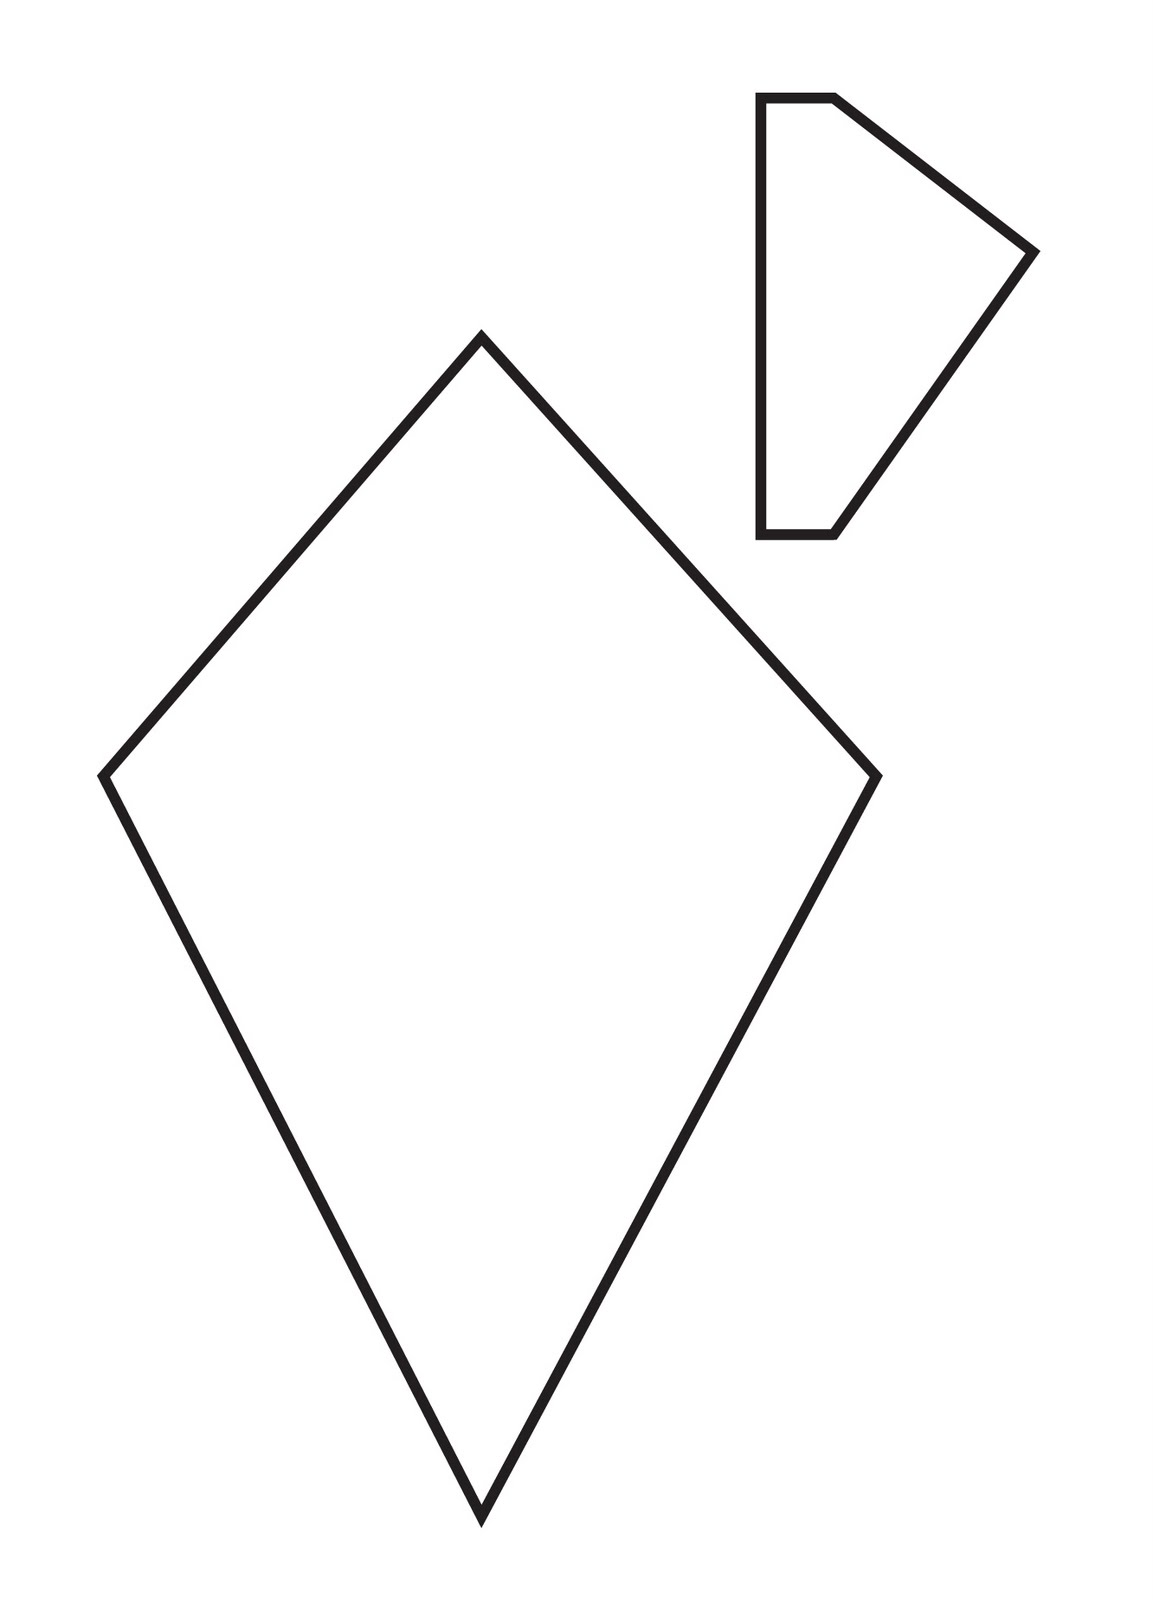 Large Kite Template - ClipArt Best